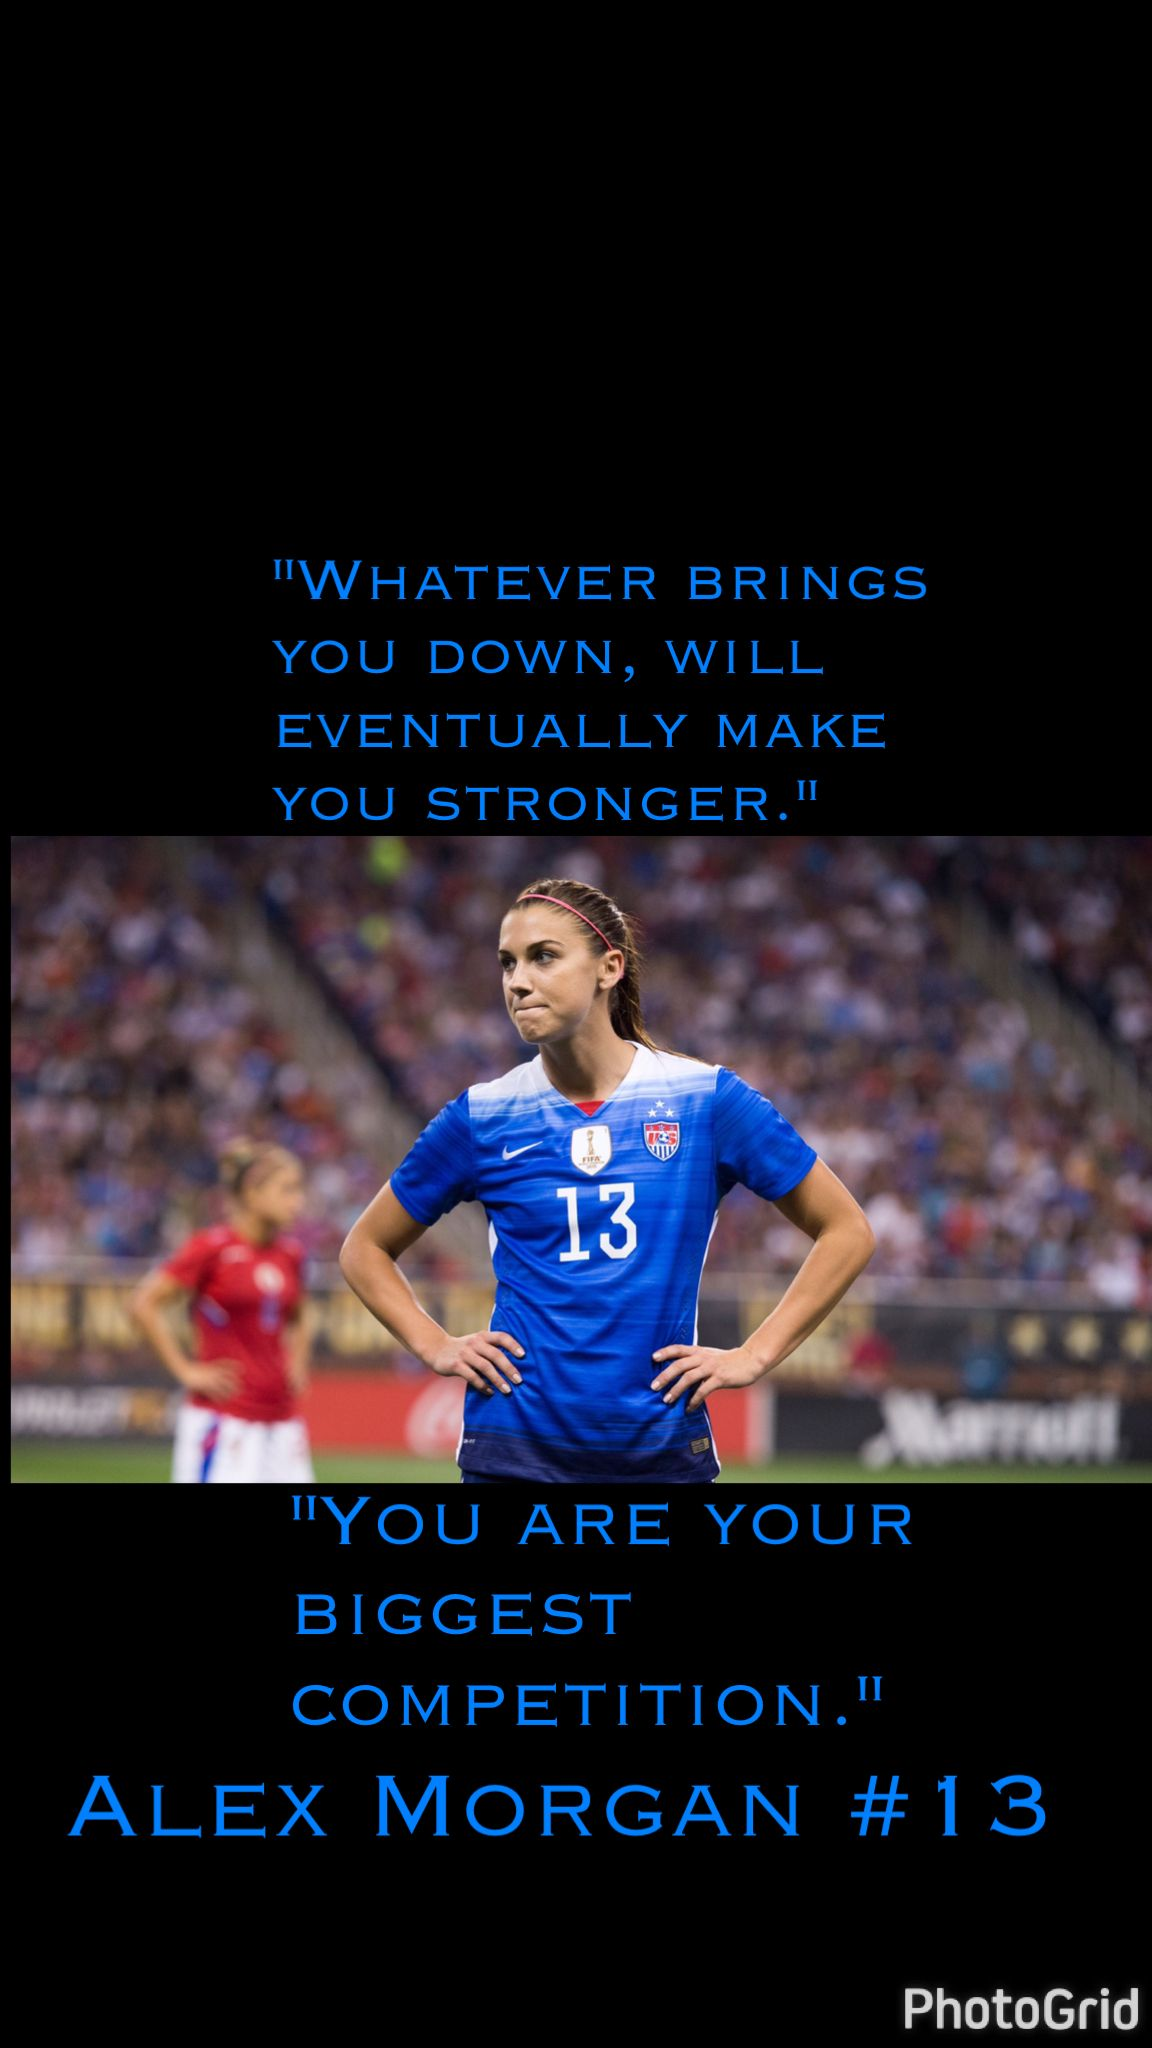 Alex morgan quote wallpaper alex morgan pinterest alex morgan quote wallpaper voltagebd